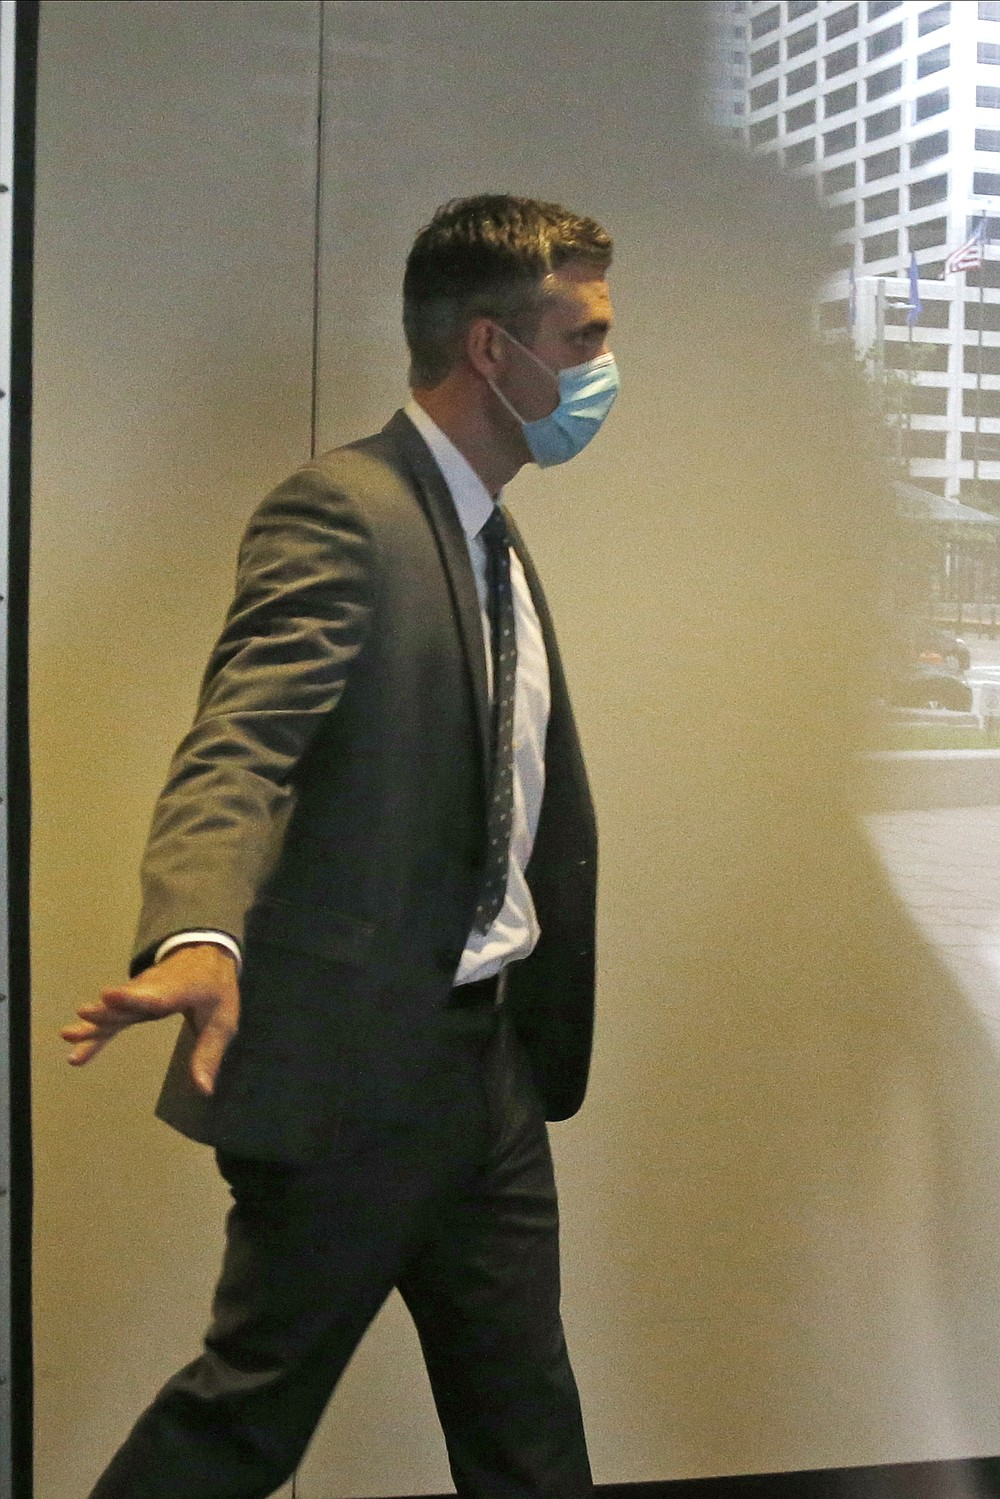 Former police officer Thomas Lane, left, leaves court Monday, June 29, 2020, following the second court appearance in Minneapolis of four former Minneapolis police officers facing charges ranging from second-degree murder to aiding and abetting murder in the Memorial Day death of George Floyd. Floyd died in police custody after a video shared online by a bystander showed officer Derek Chauvin kneeling on Floyd's neck during his arrest as he pleaded that he couldn't breathe. (AP Photo/Jim Mone)